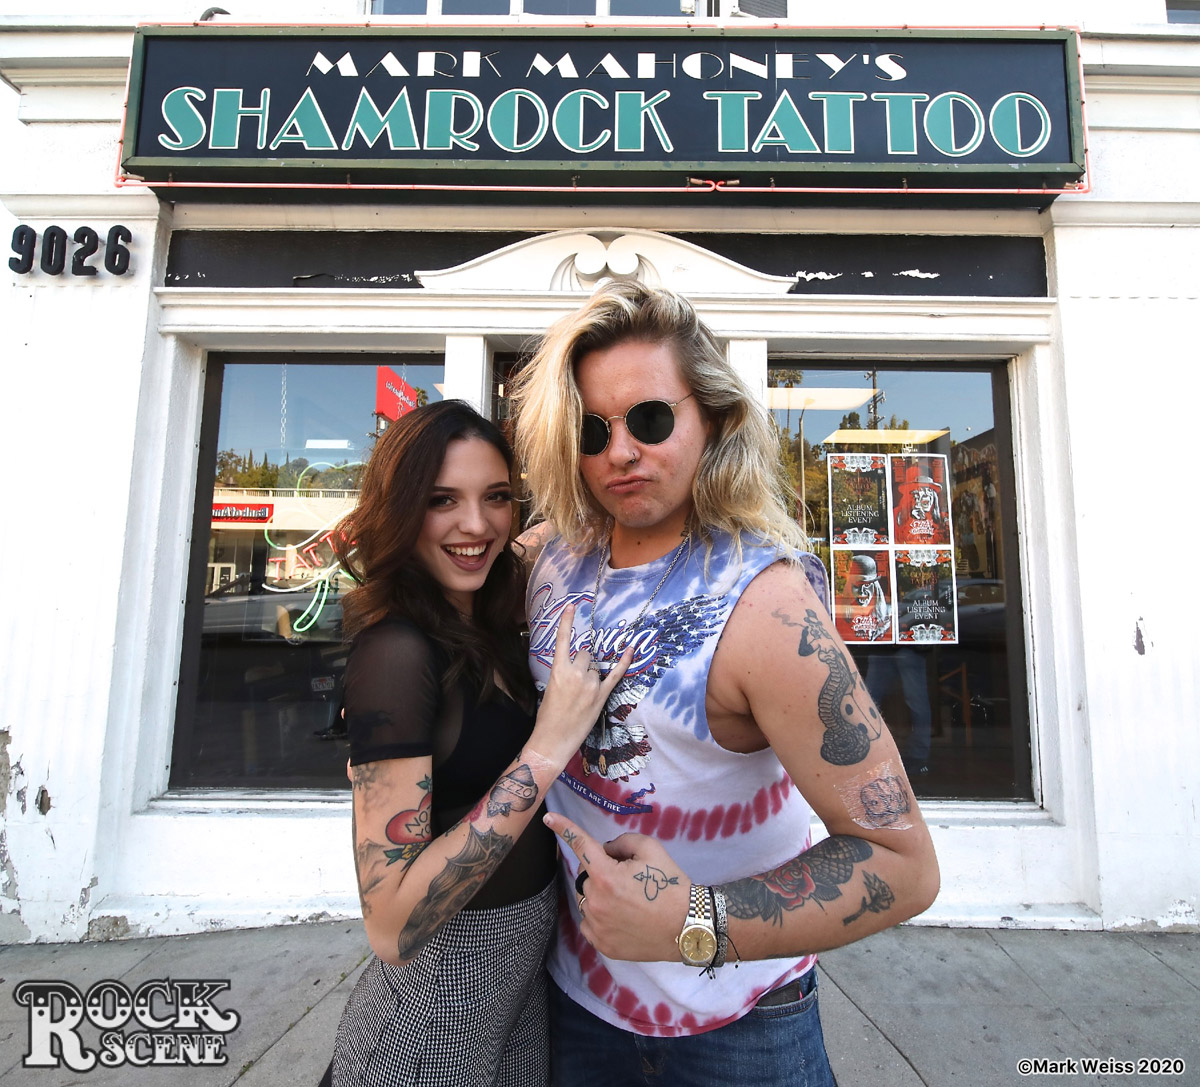 Ozzy Osbourne Shamrock Social Club tattoo party February 20, 2020